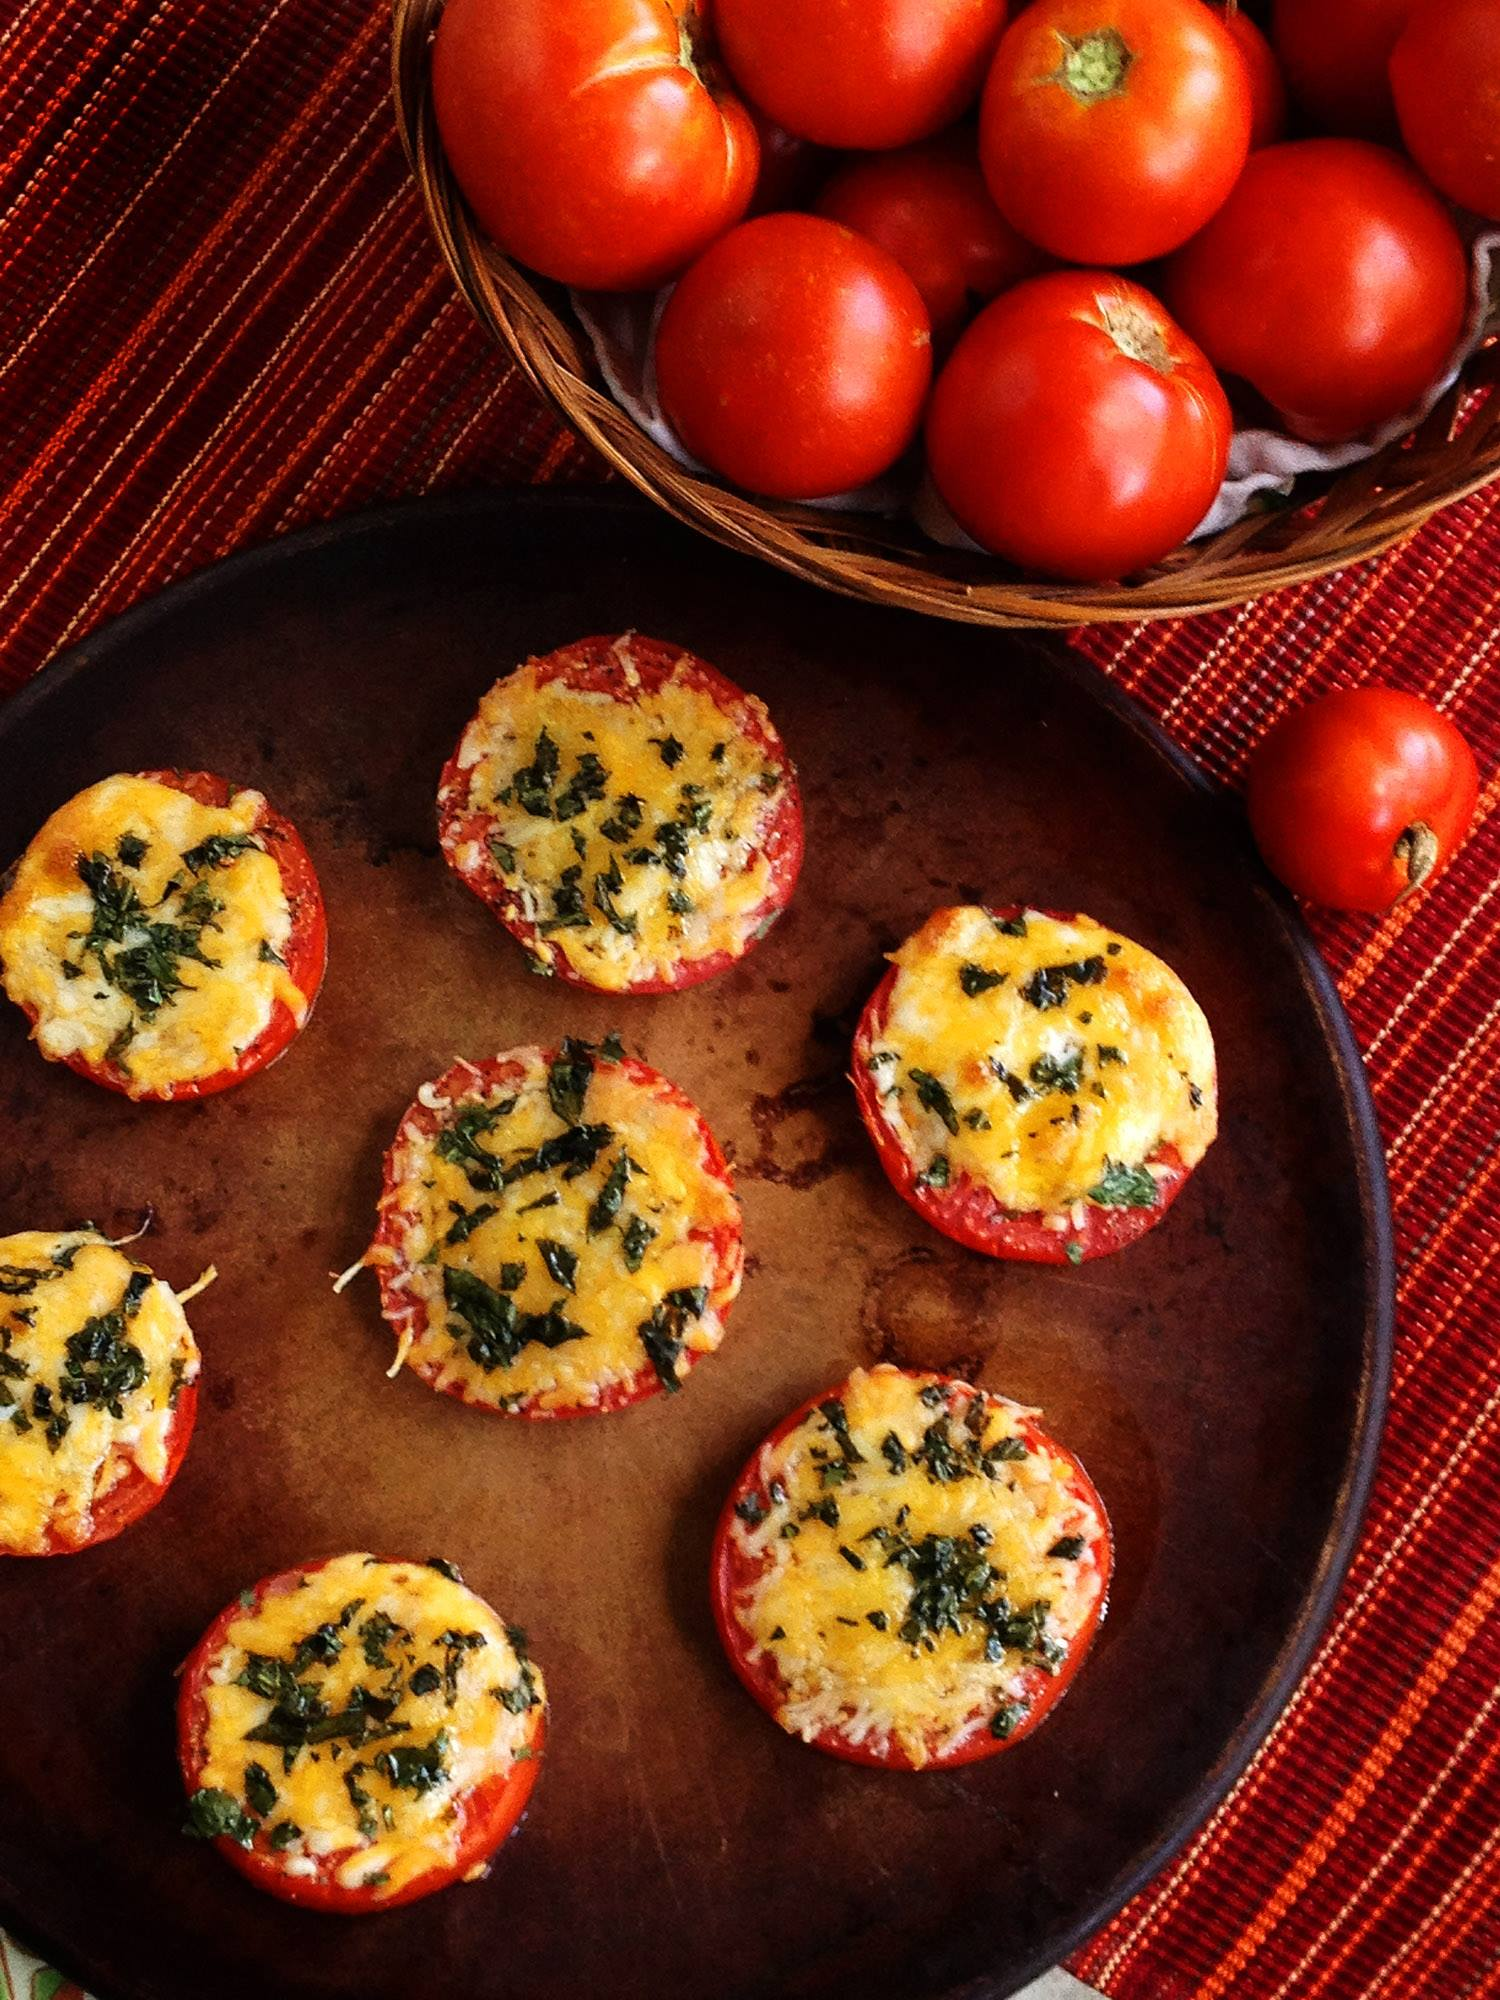 BROILED TOMATOES WITH BASIL